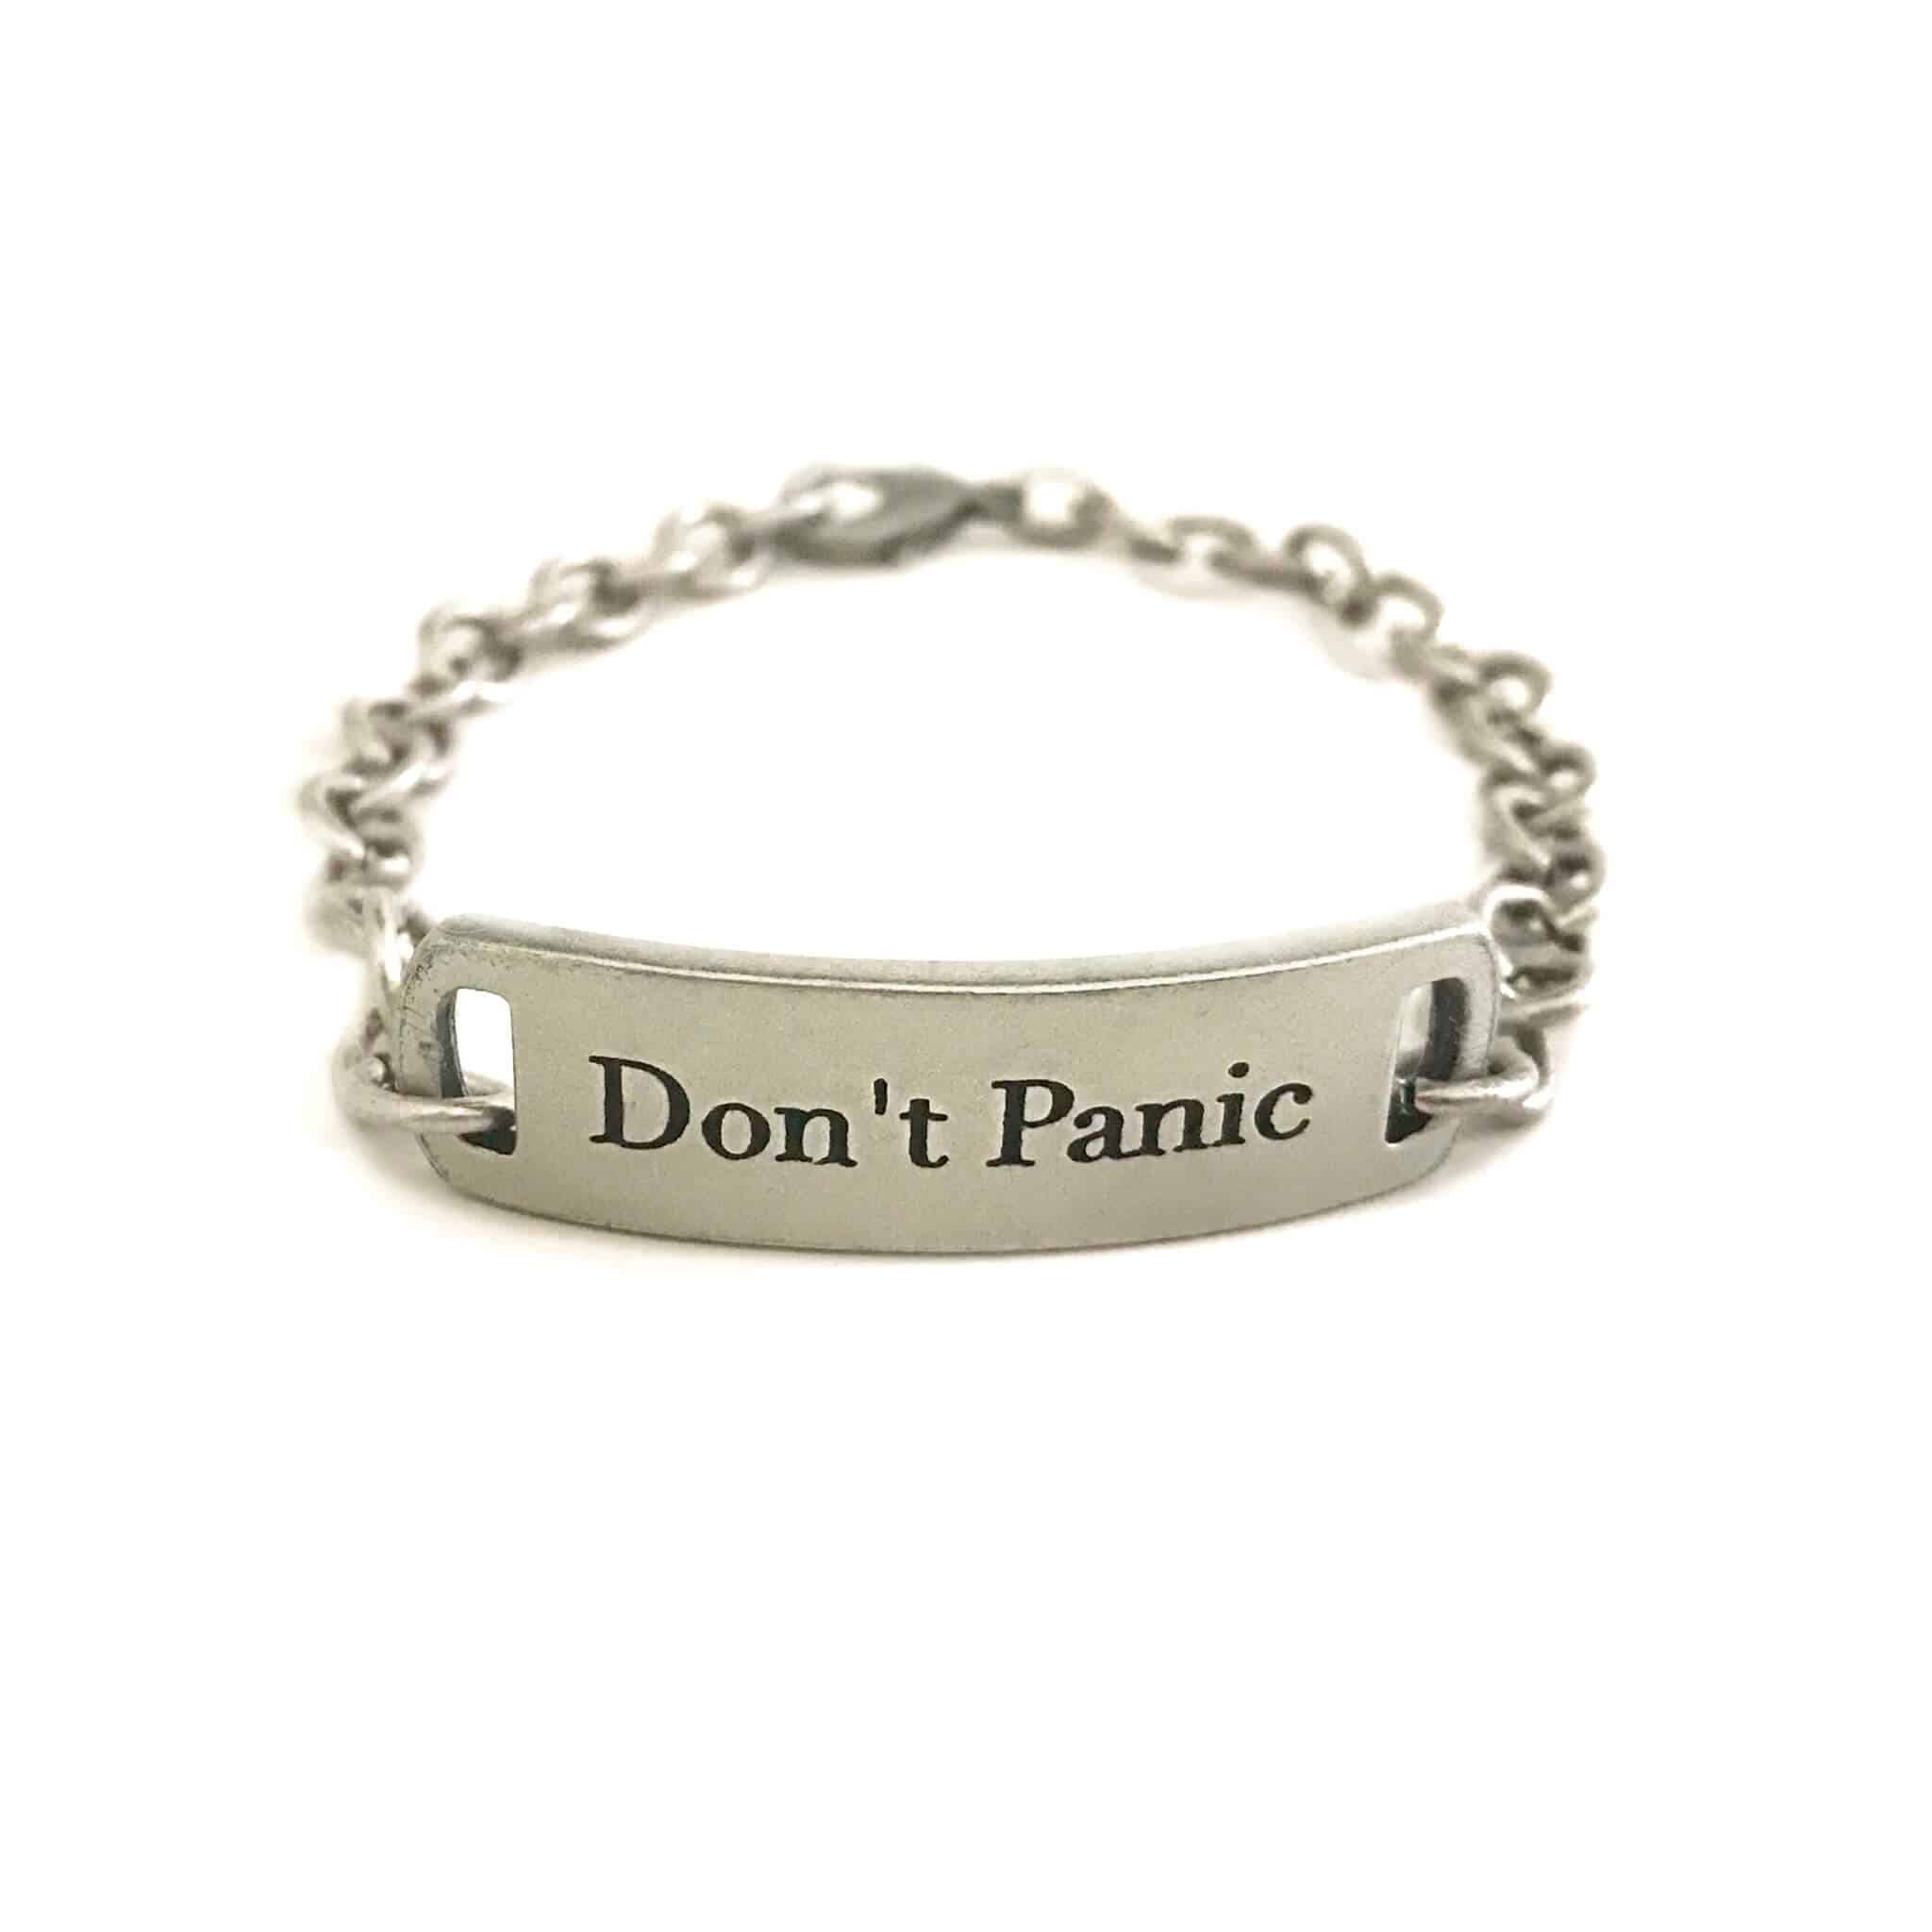 Don't Panic self-help graduation gift bracelet